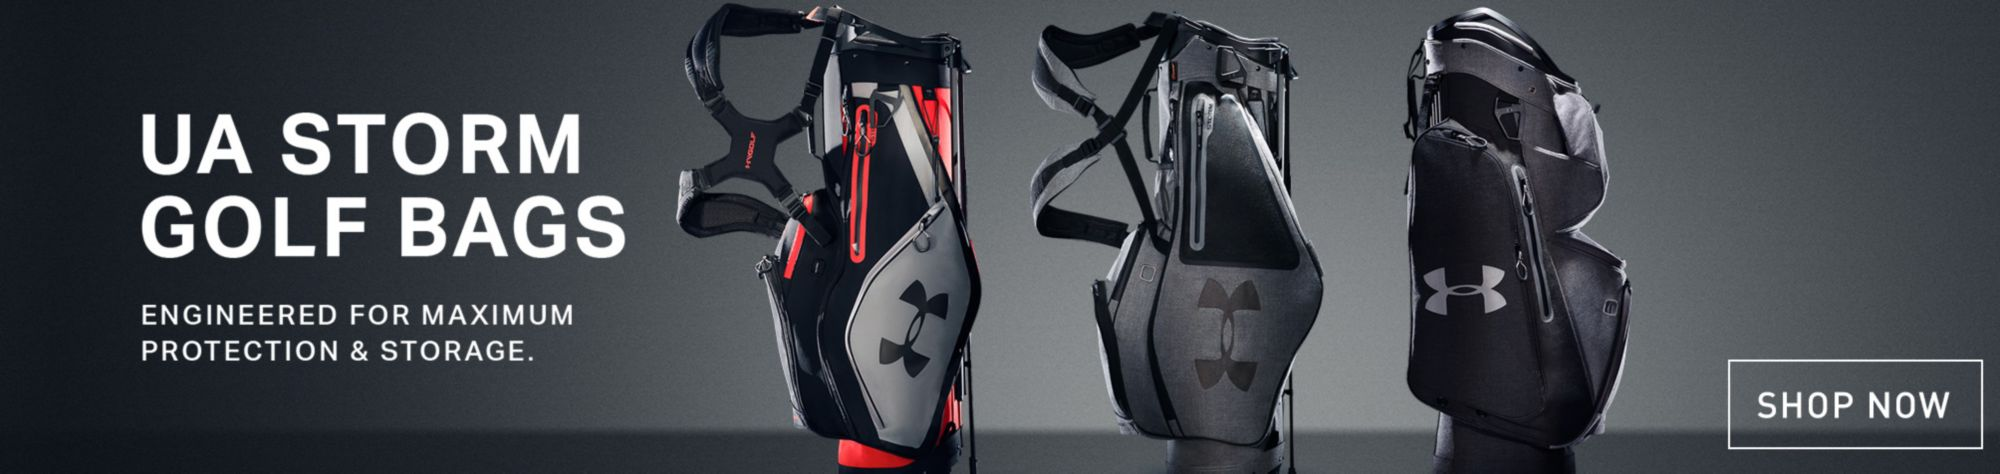 Shop Under Armour Golf Bags